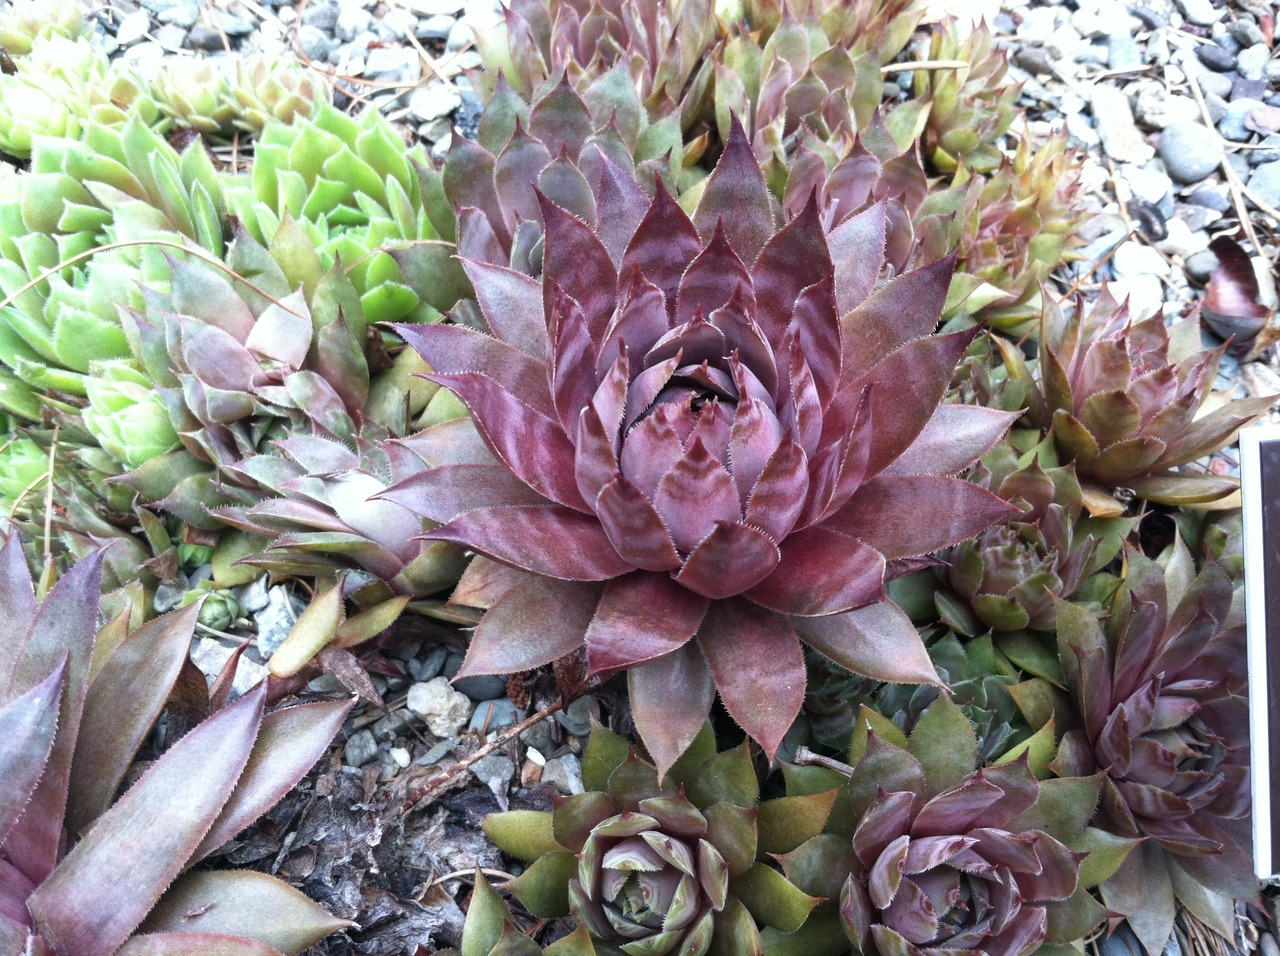 Sempervivum 'Rubrum Ash,' commonly referred to as a member of the 'hens and chicks' group. A member of the Crassulaceae family, which grow in rosettes.